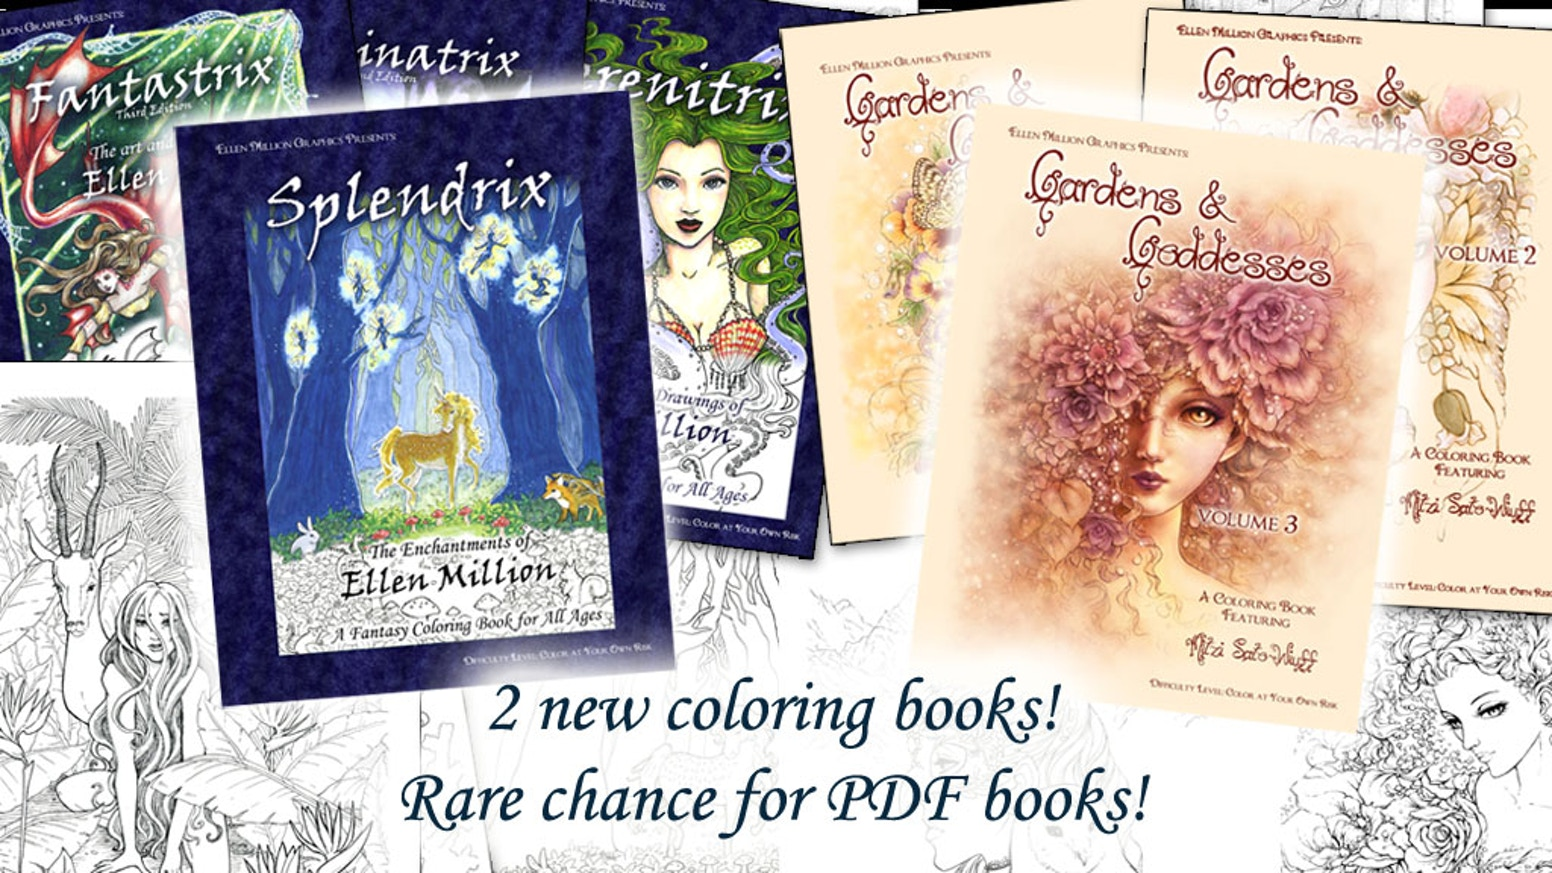 Two stunning new fantasy coloring books for (so-called) grown-ups by Ellen Million and Mitzi Sato-Wiuff: Splendrix and Gardens and Goddesses 3!